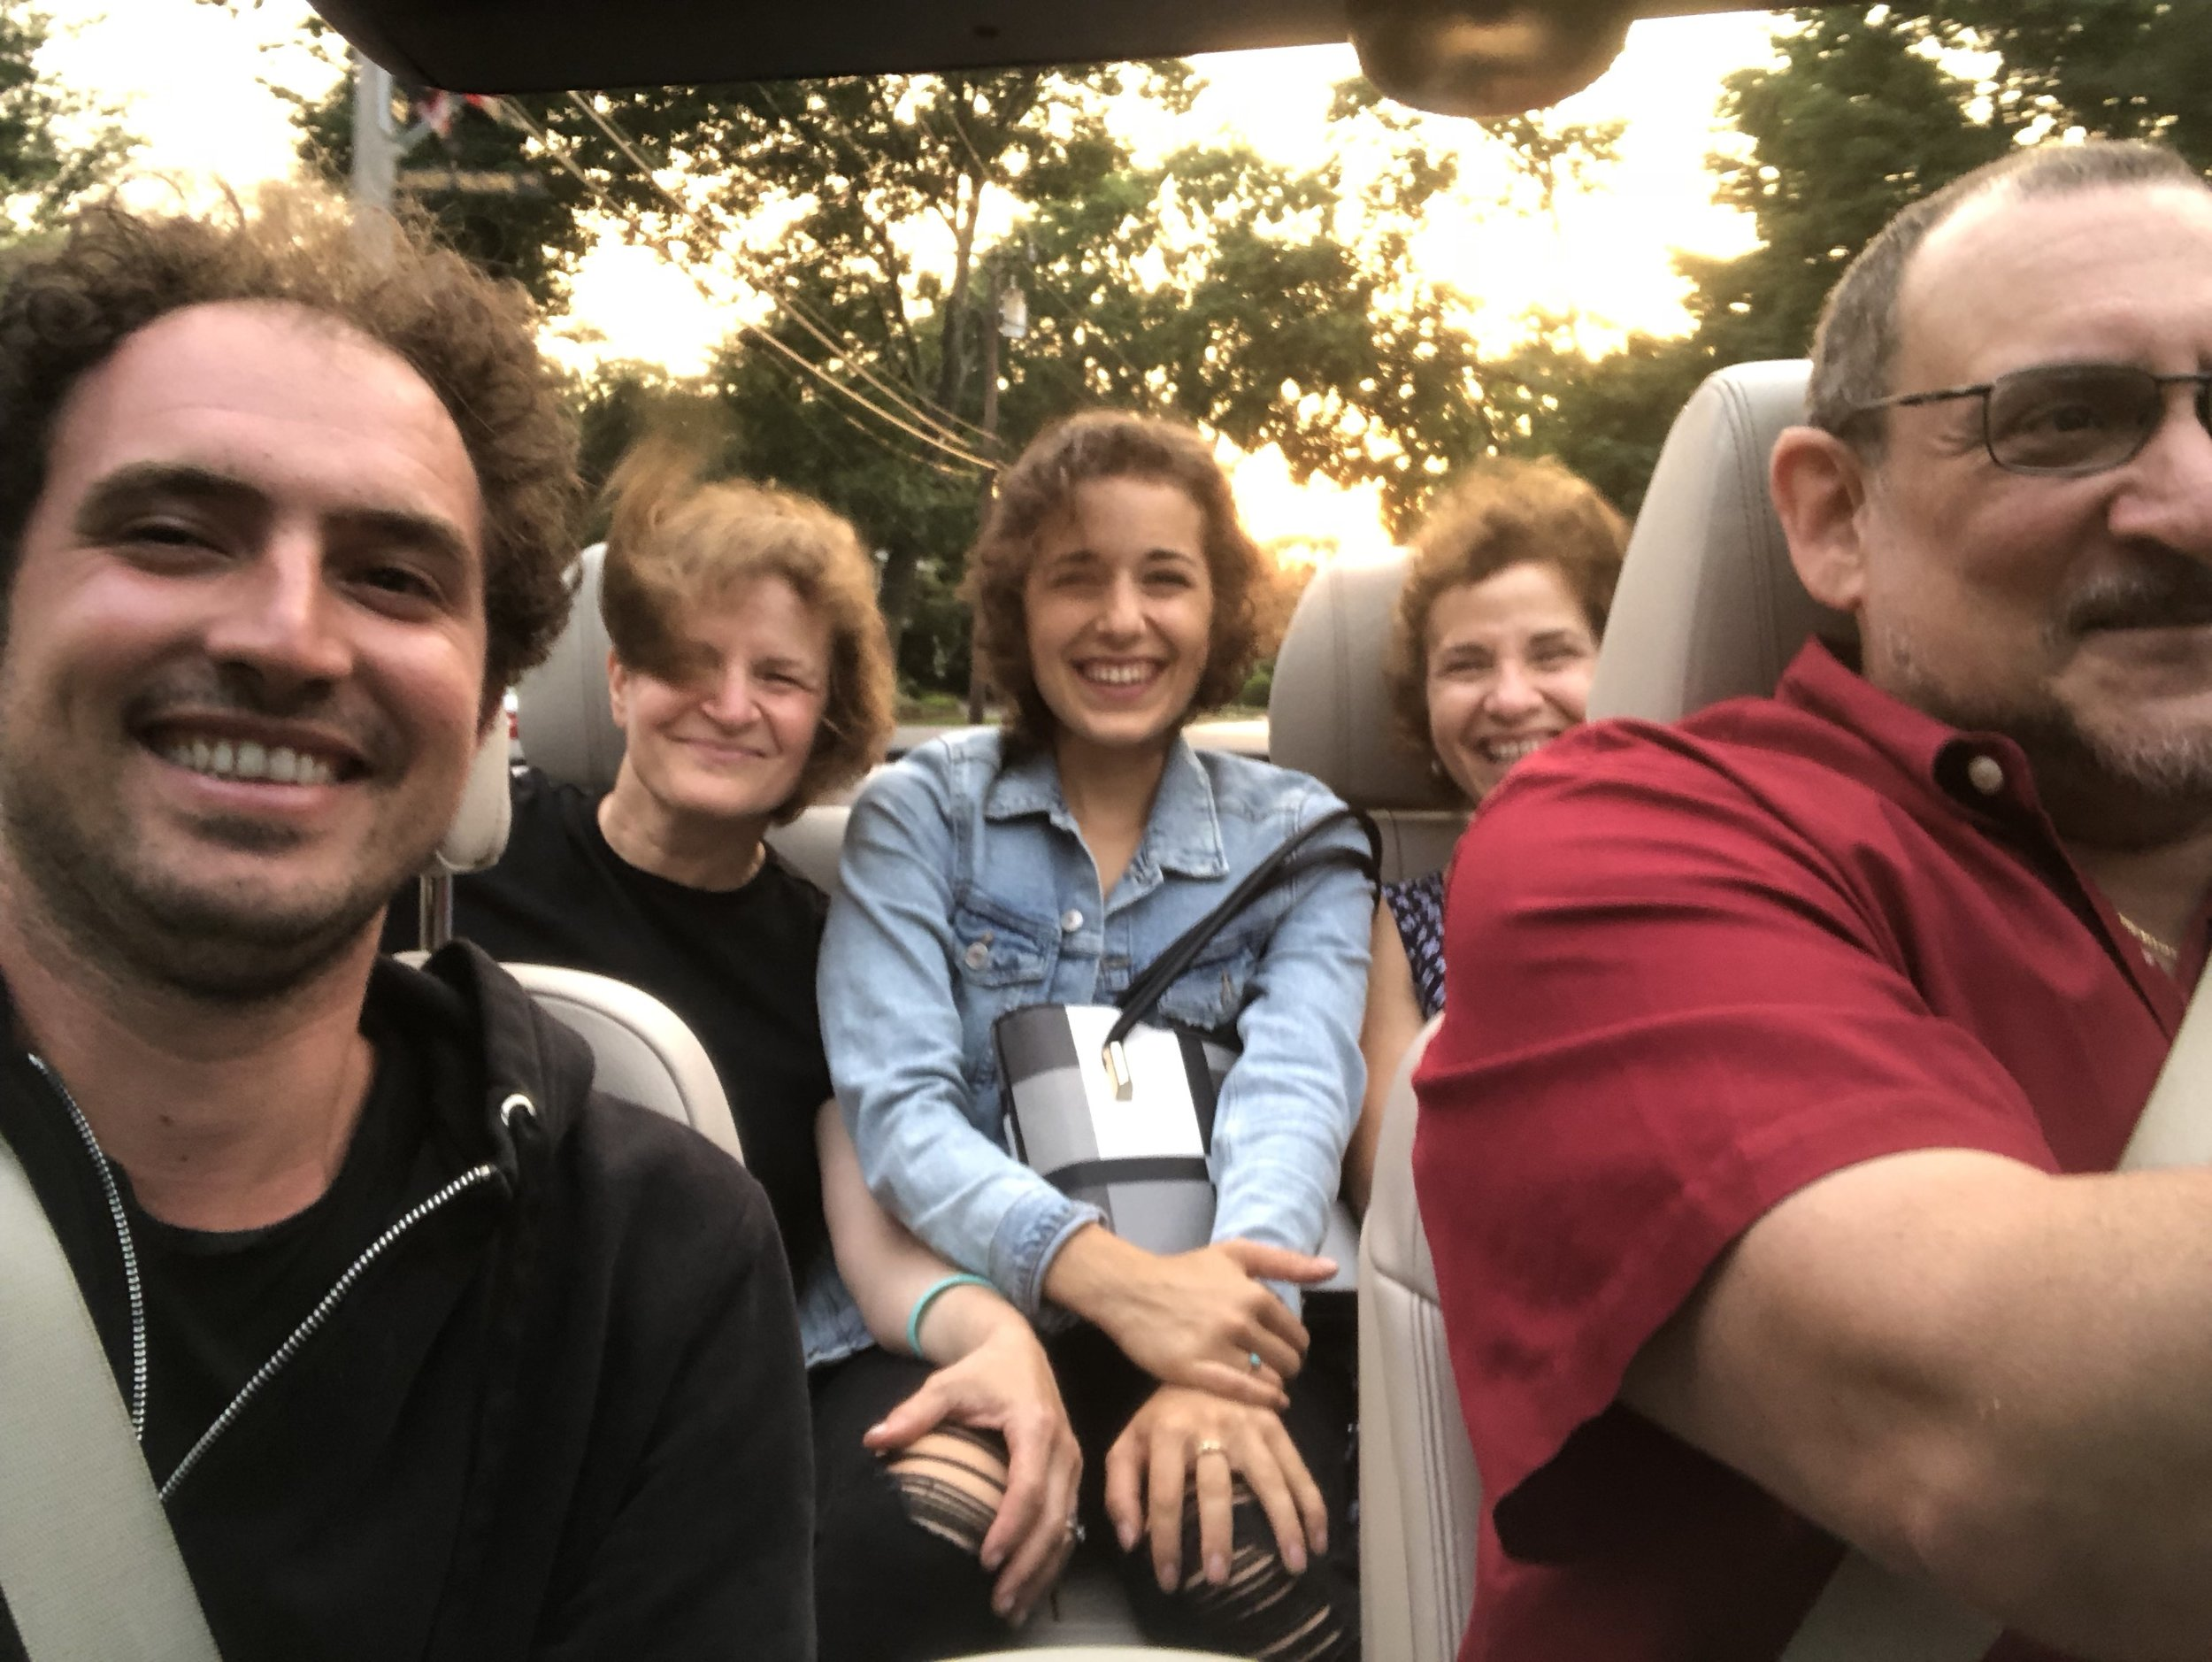 3 July 2018 - On our way out to dinner - Long Island